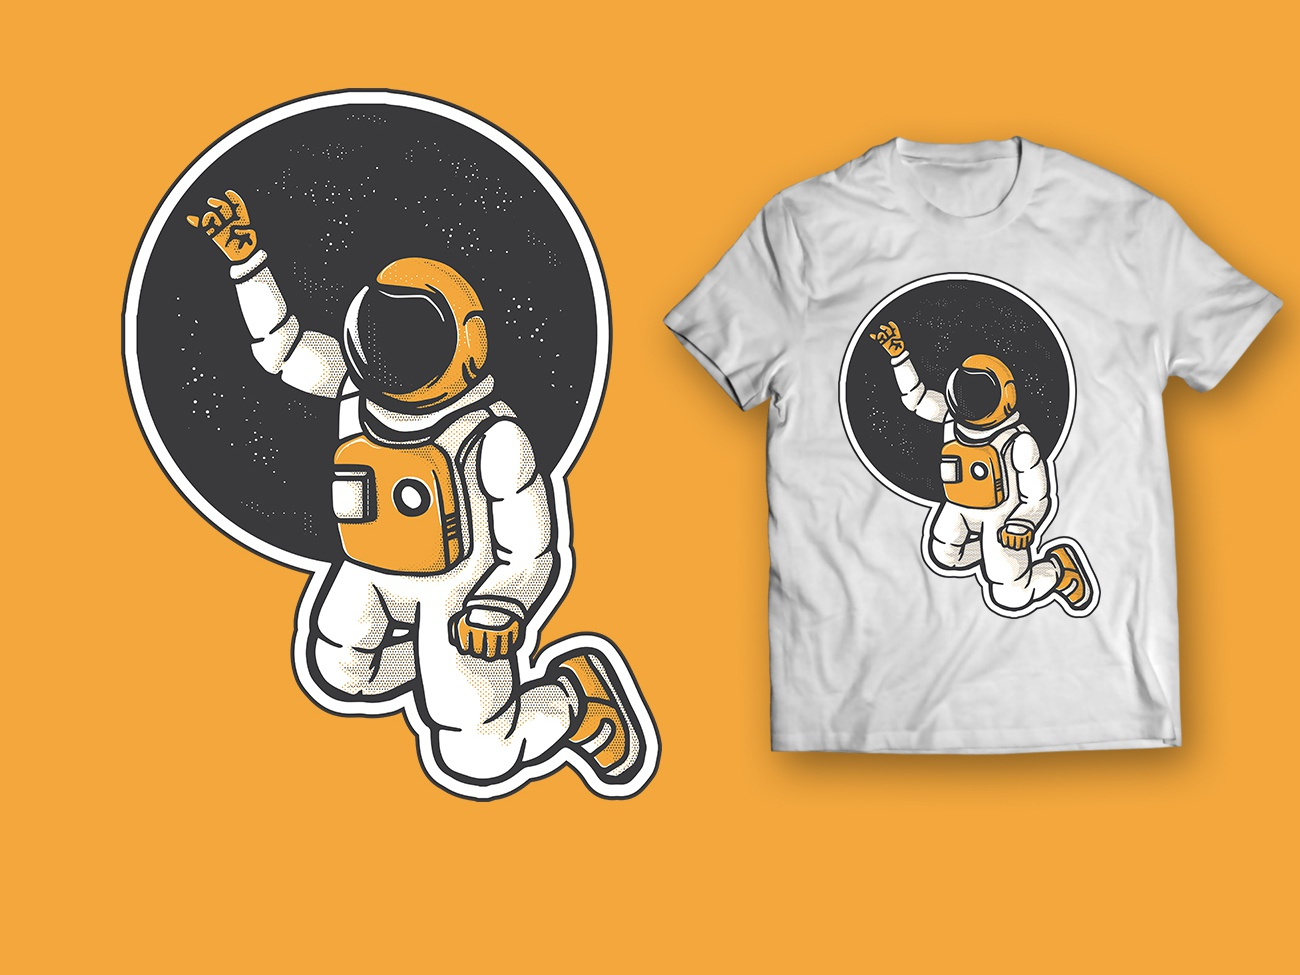 Astronaut Left Behind icon logo design illustration graphic design vector forgotten rocket rocket ship stars universe galaxy space astronaut customized shirts shirt men tshirt t shirt design t shirt